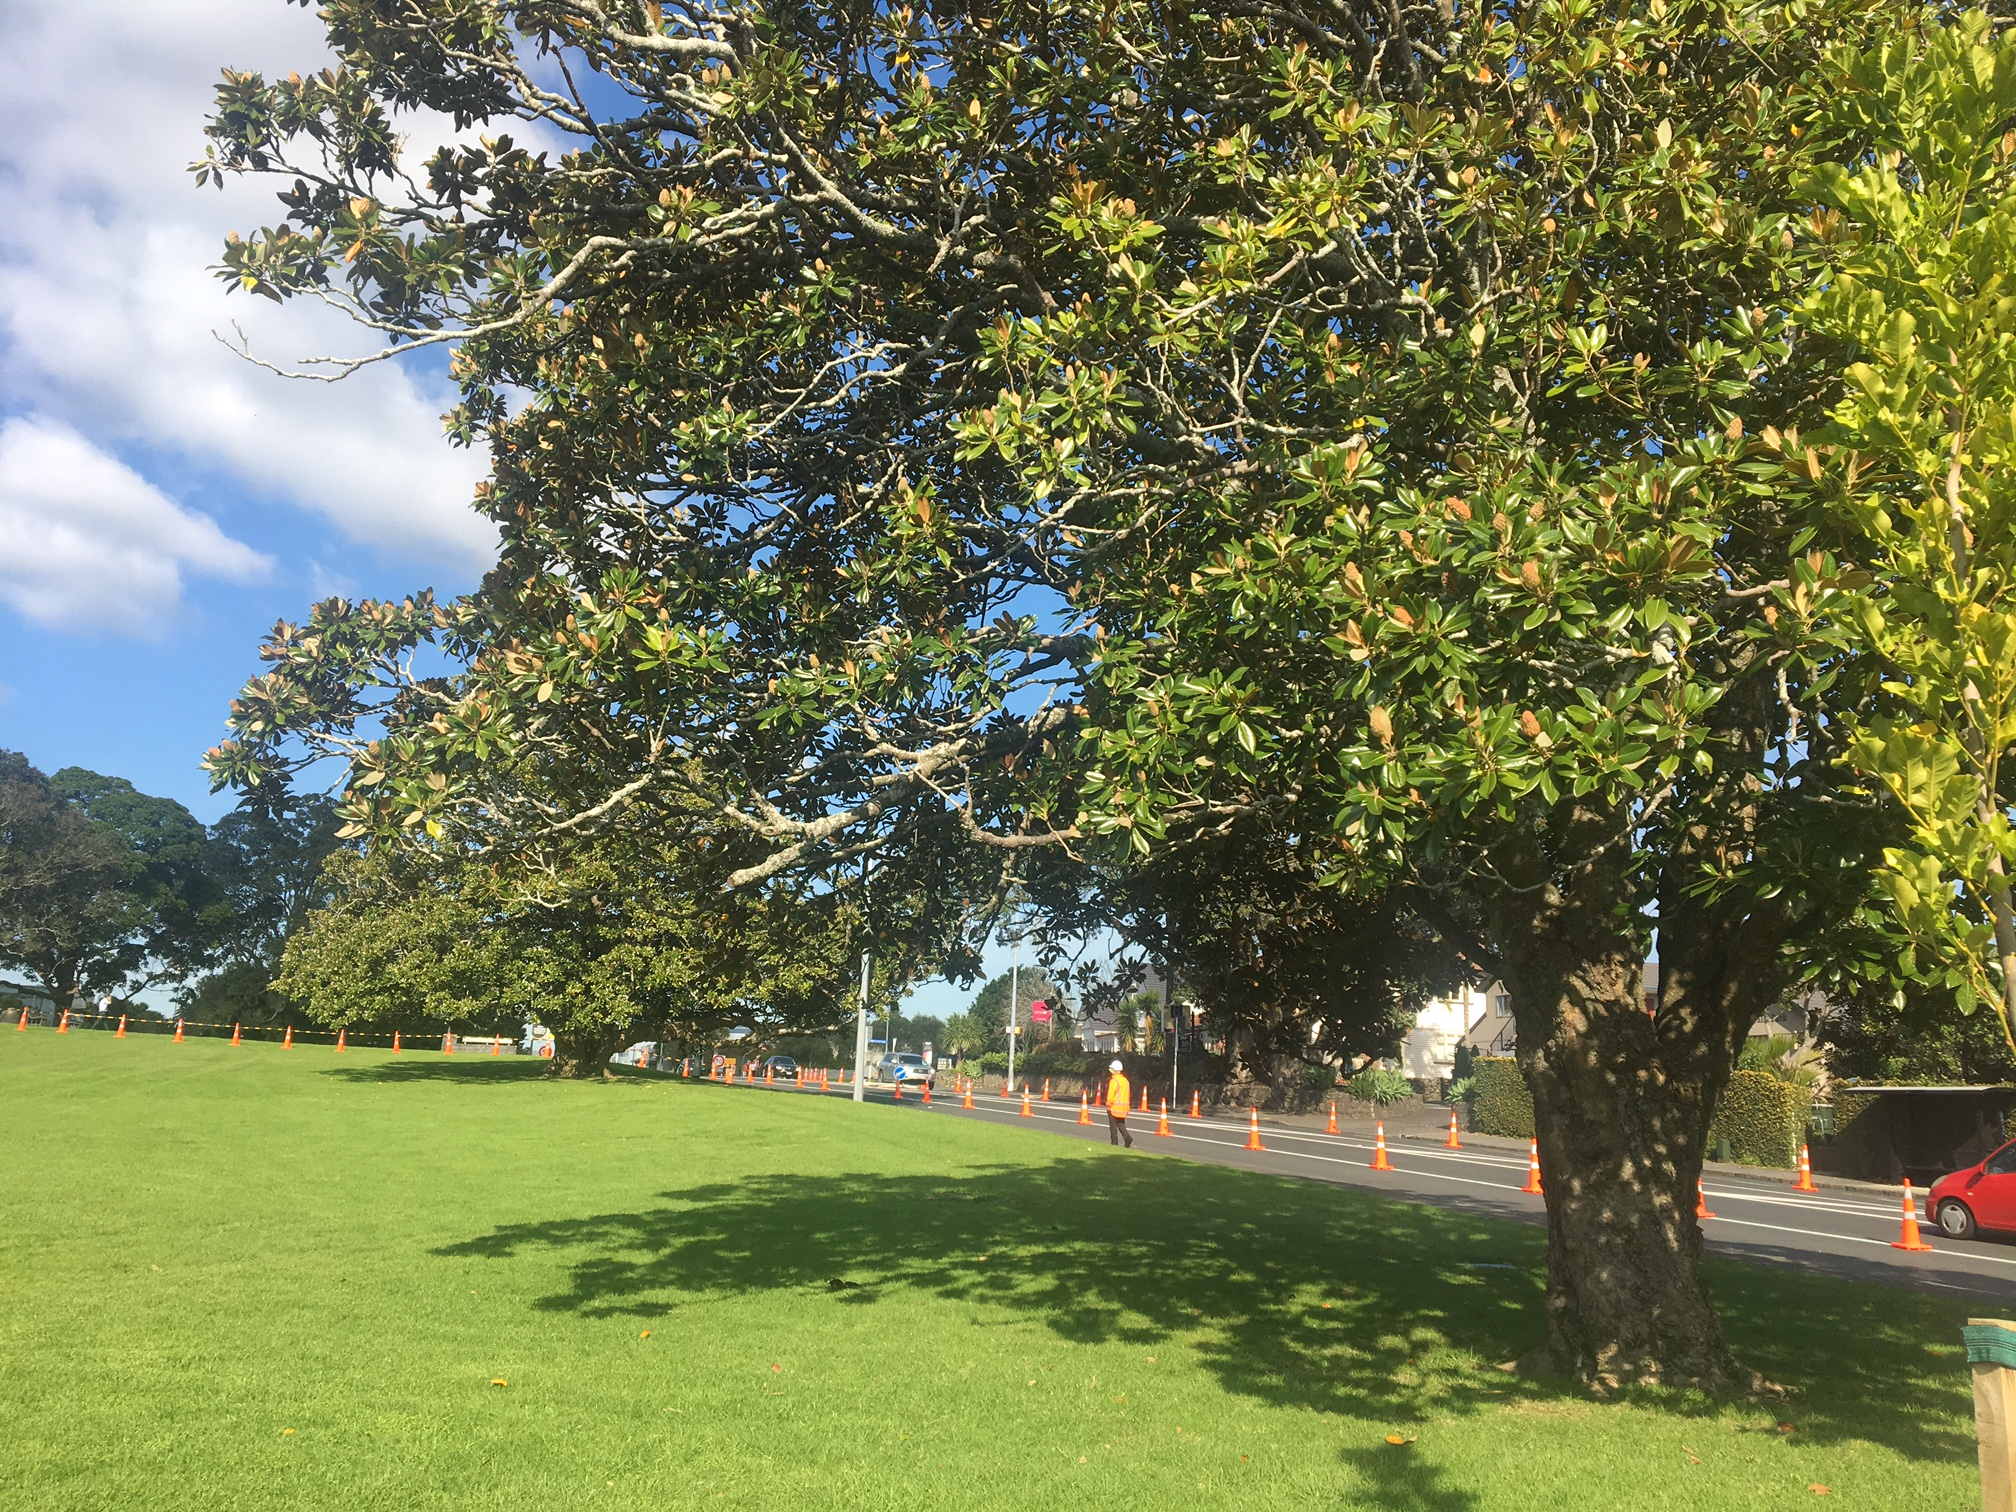 Outcry As Formerly Protected Cornwall Park Magnolias Are Felled Nz